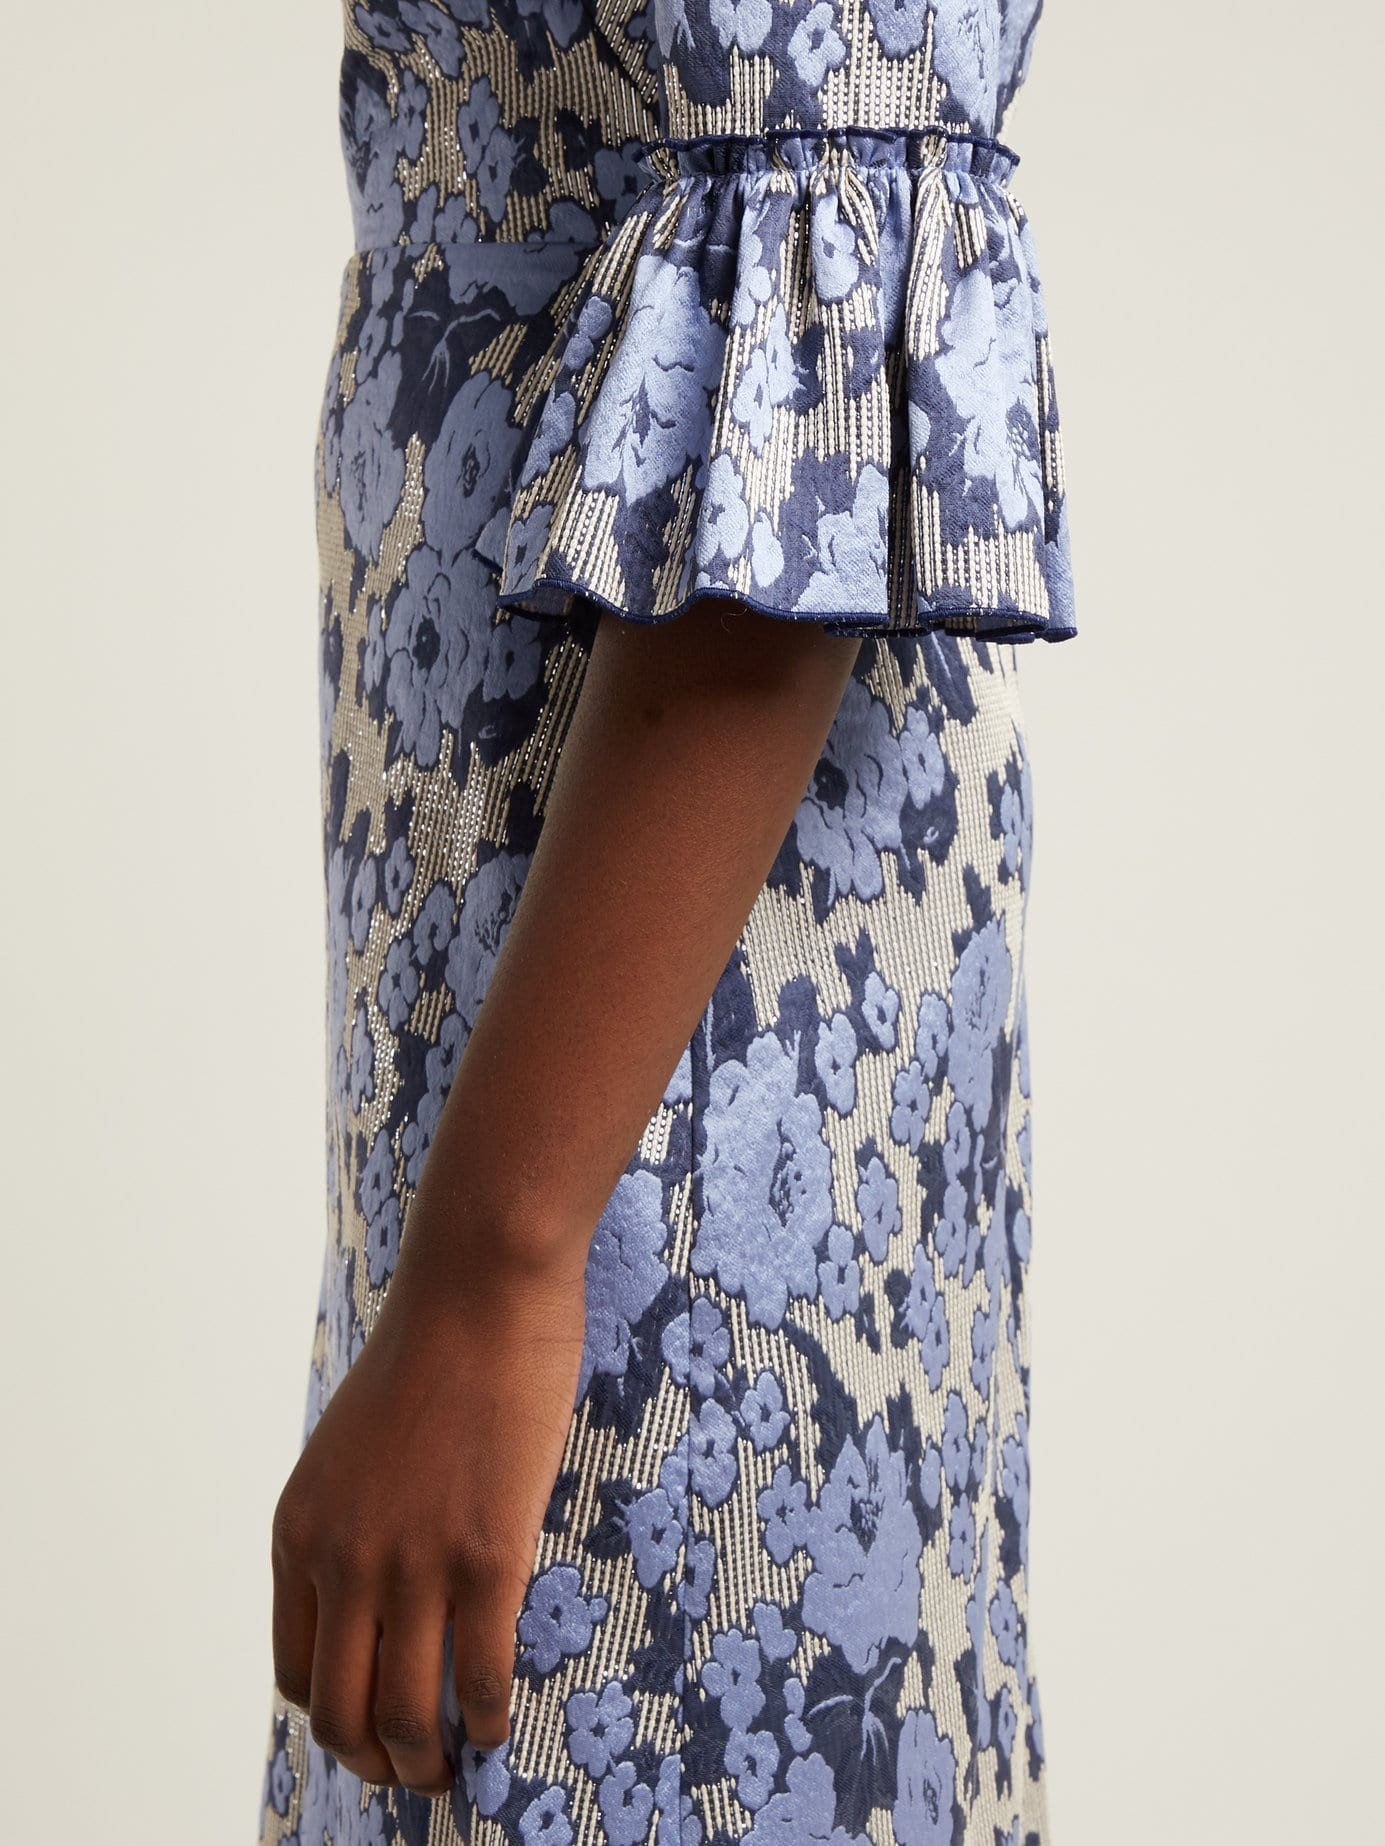 THE VAMPIRE'S WIFE Festival Floral Jacquard Ruffle Trimmed Blue Dress